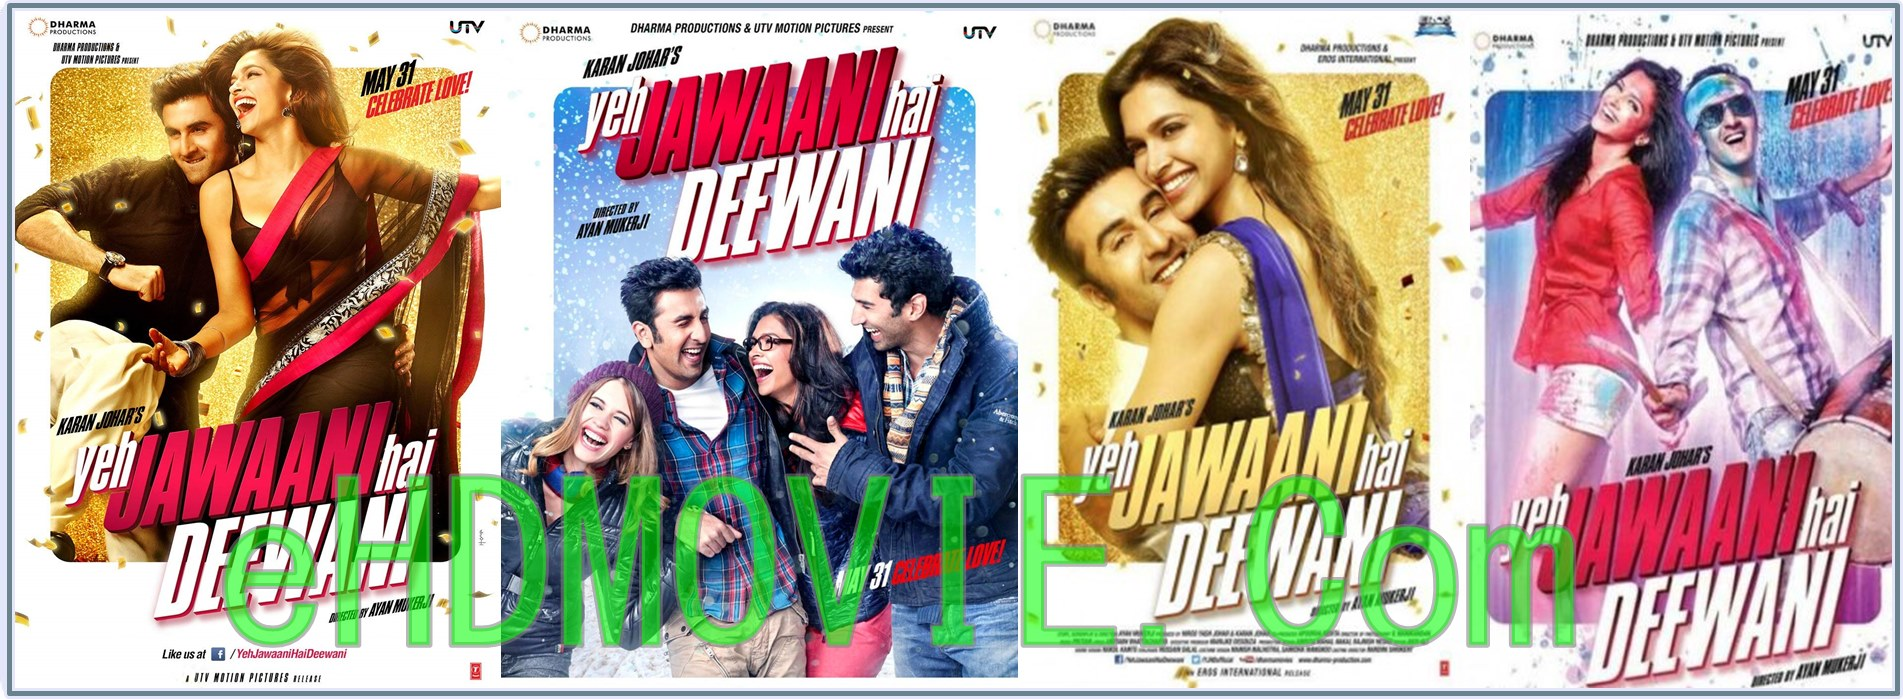 Yeh Jawaani Hai Deewani 2013 Full Movie Hindi 720p - 480p ORG BRRip 450MB - 1.2GB ESubs Free Download